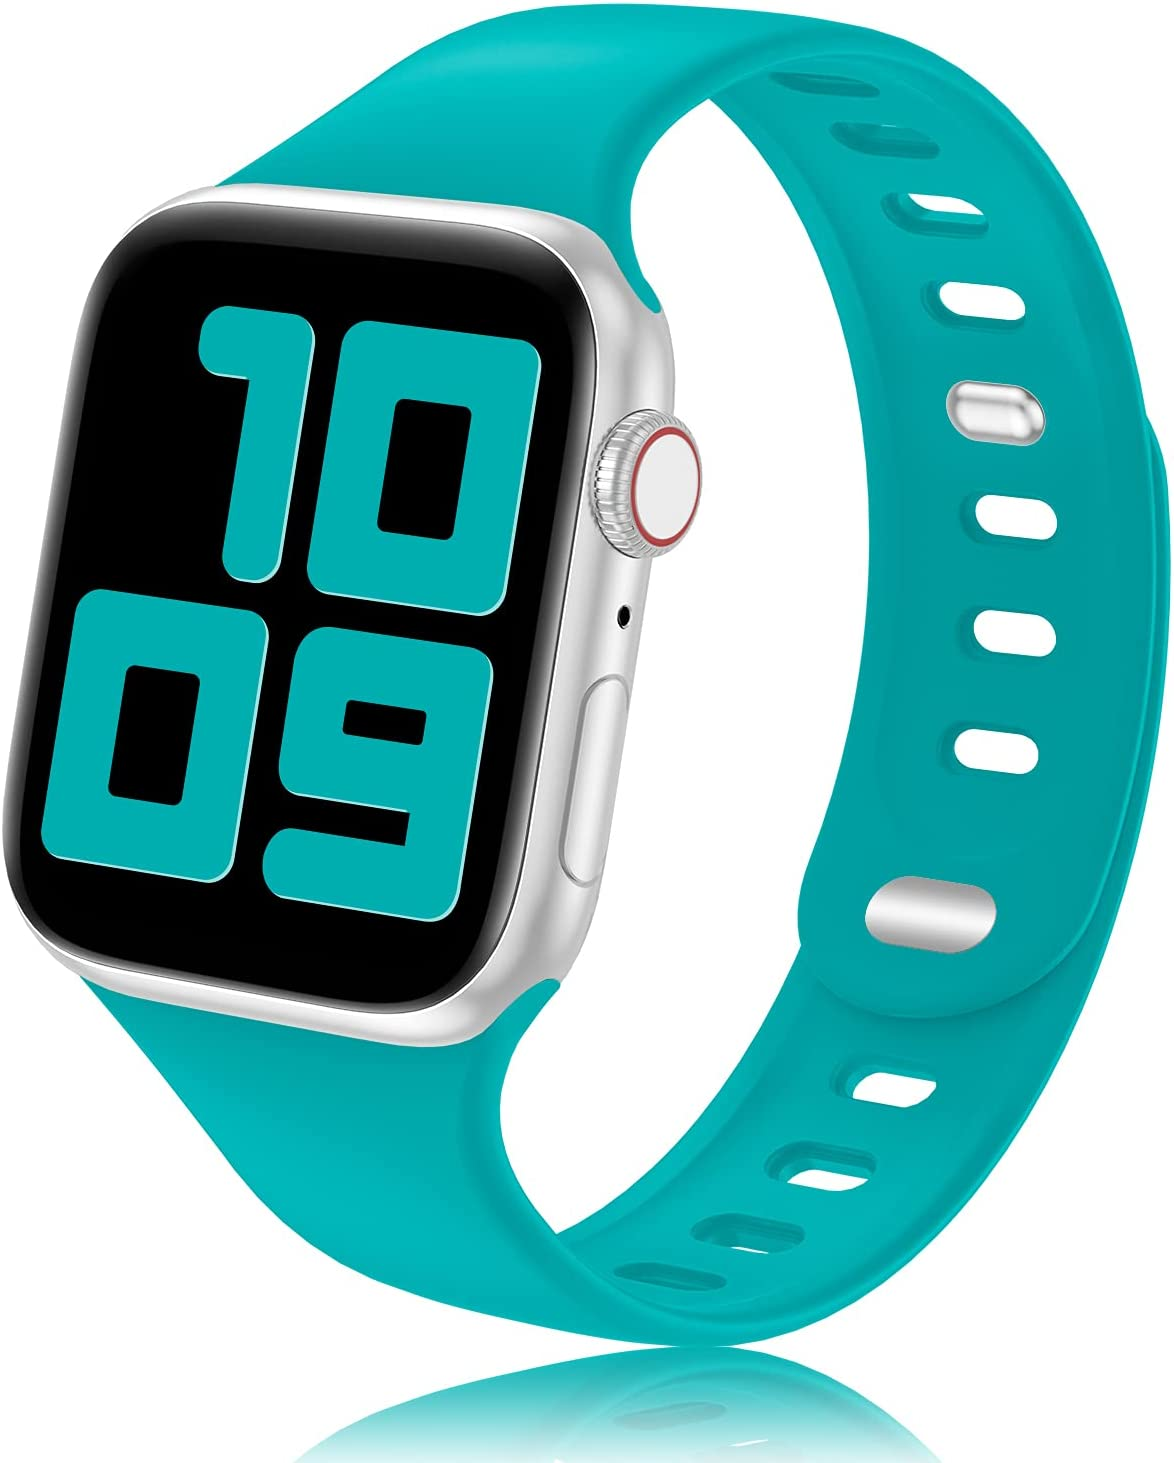 YAXIN Sport Band Compatible with Apple Watch Bands 38mm 40mm 44mm 42mm Women Men, Soft Silicone 2-clasp iWatch Bands Replacement Strap Compatible for iWatch SE Series 6/5/4/3/2/1, Teal